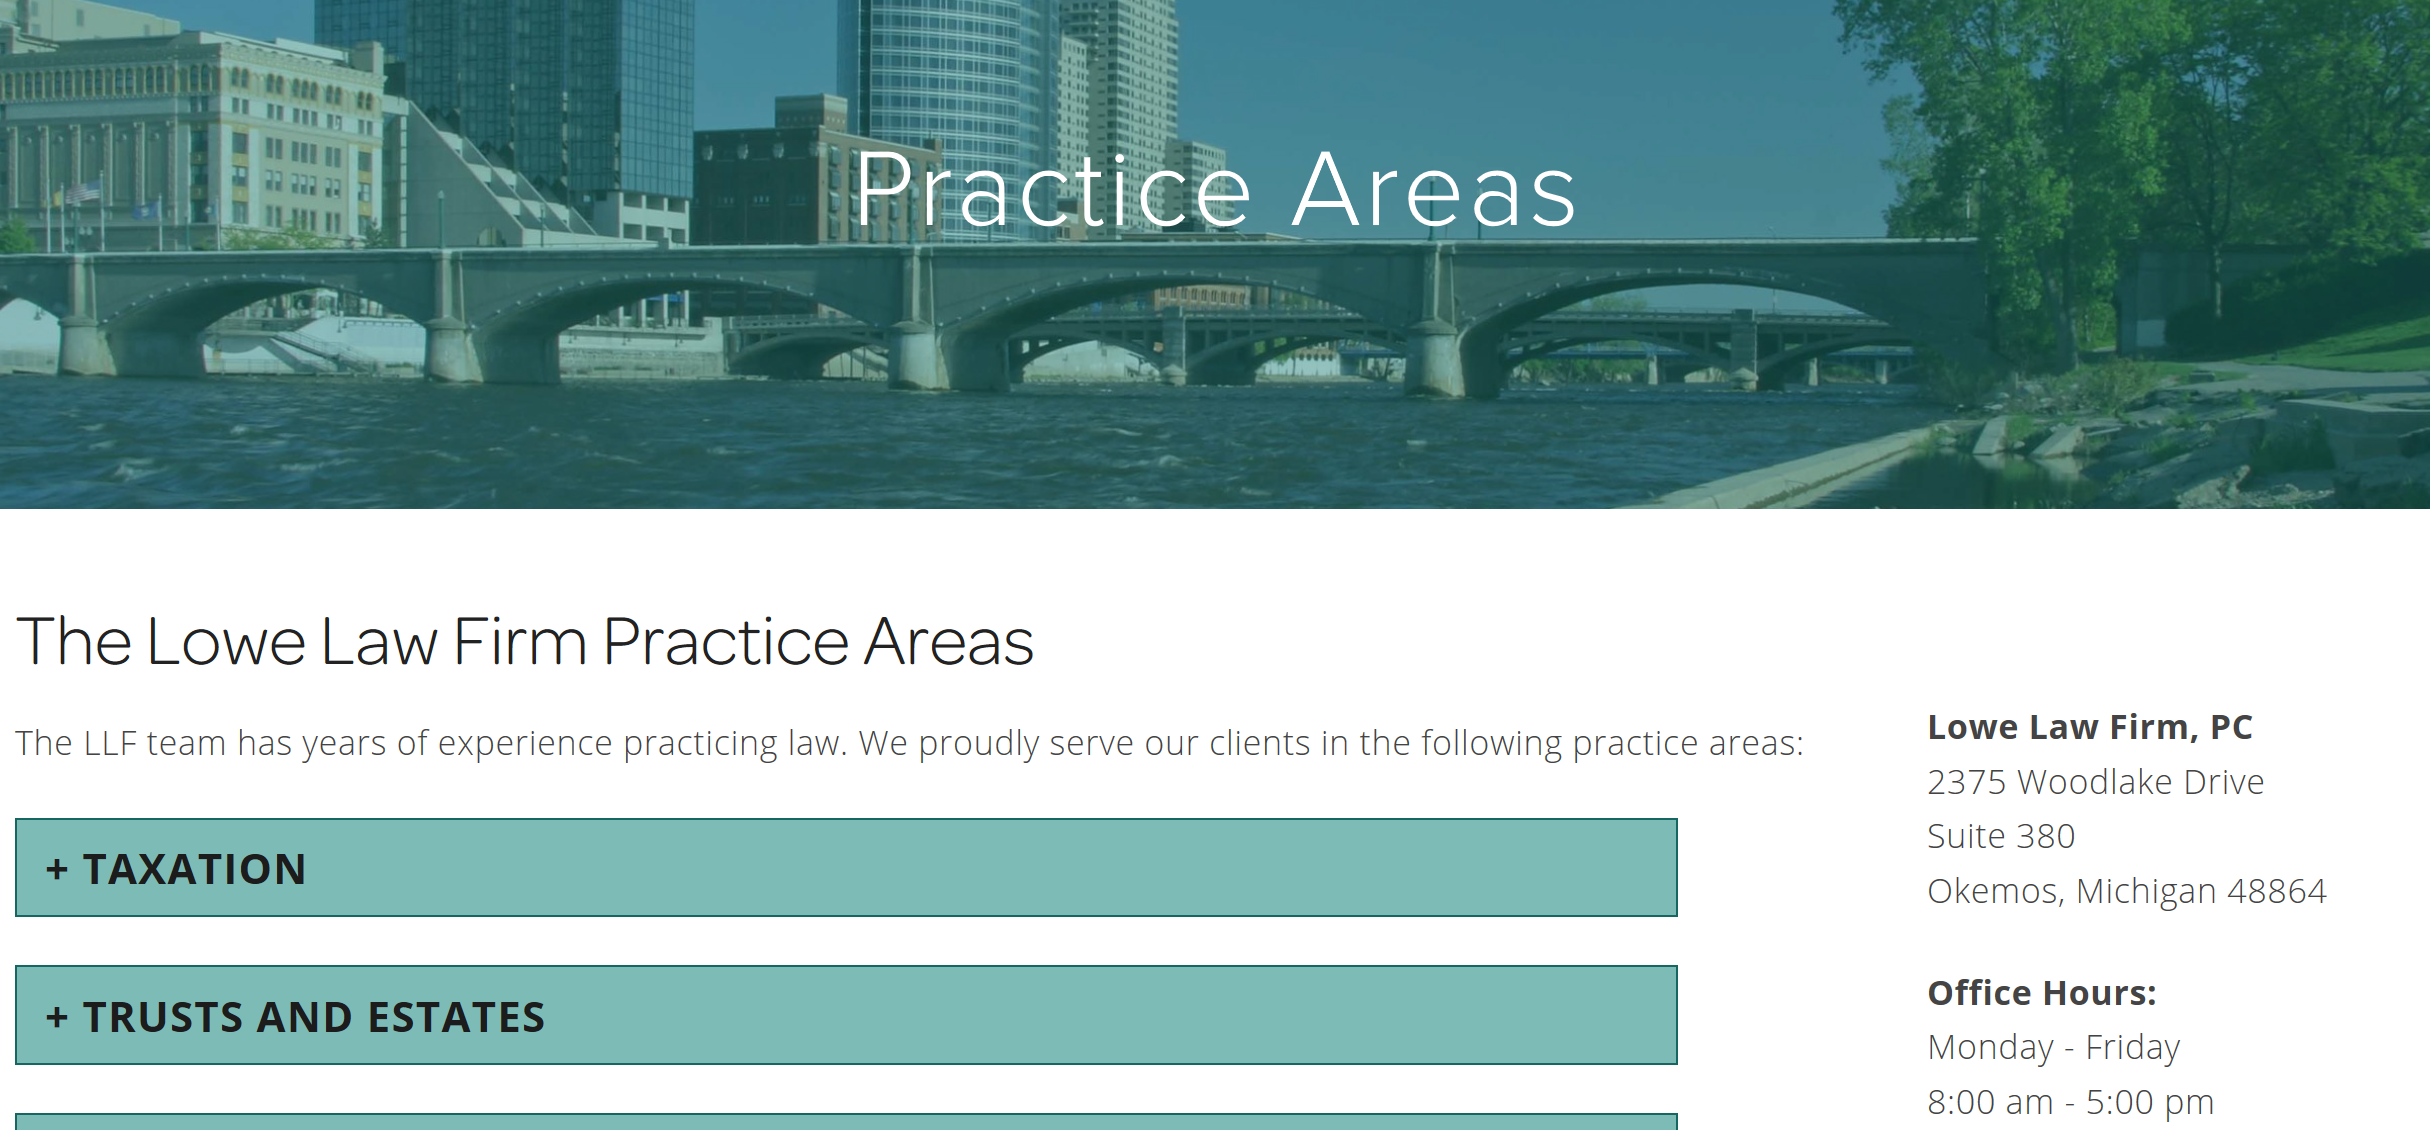 Lowe Law Firm - Practice Areas